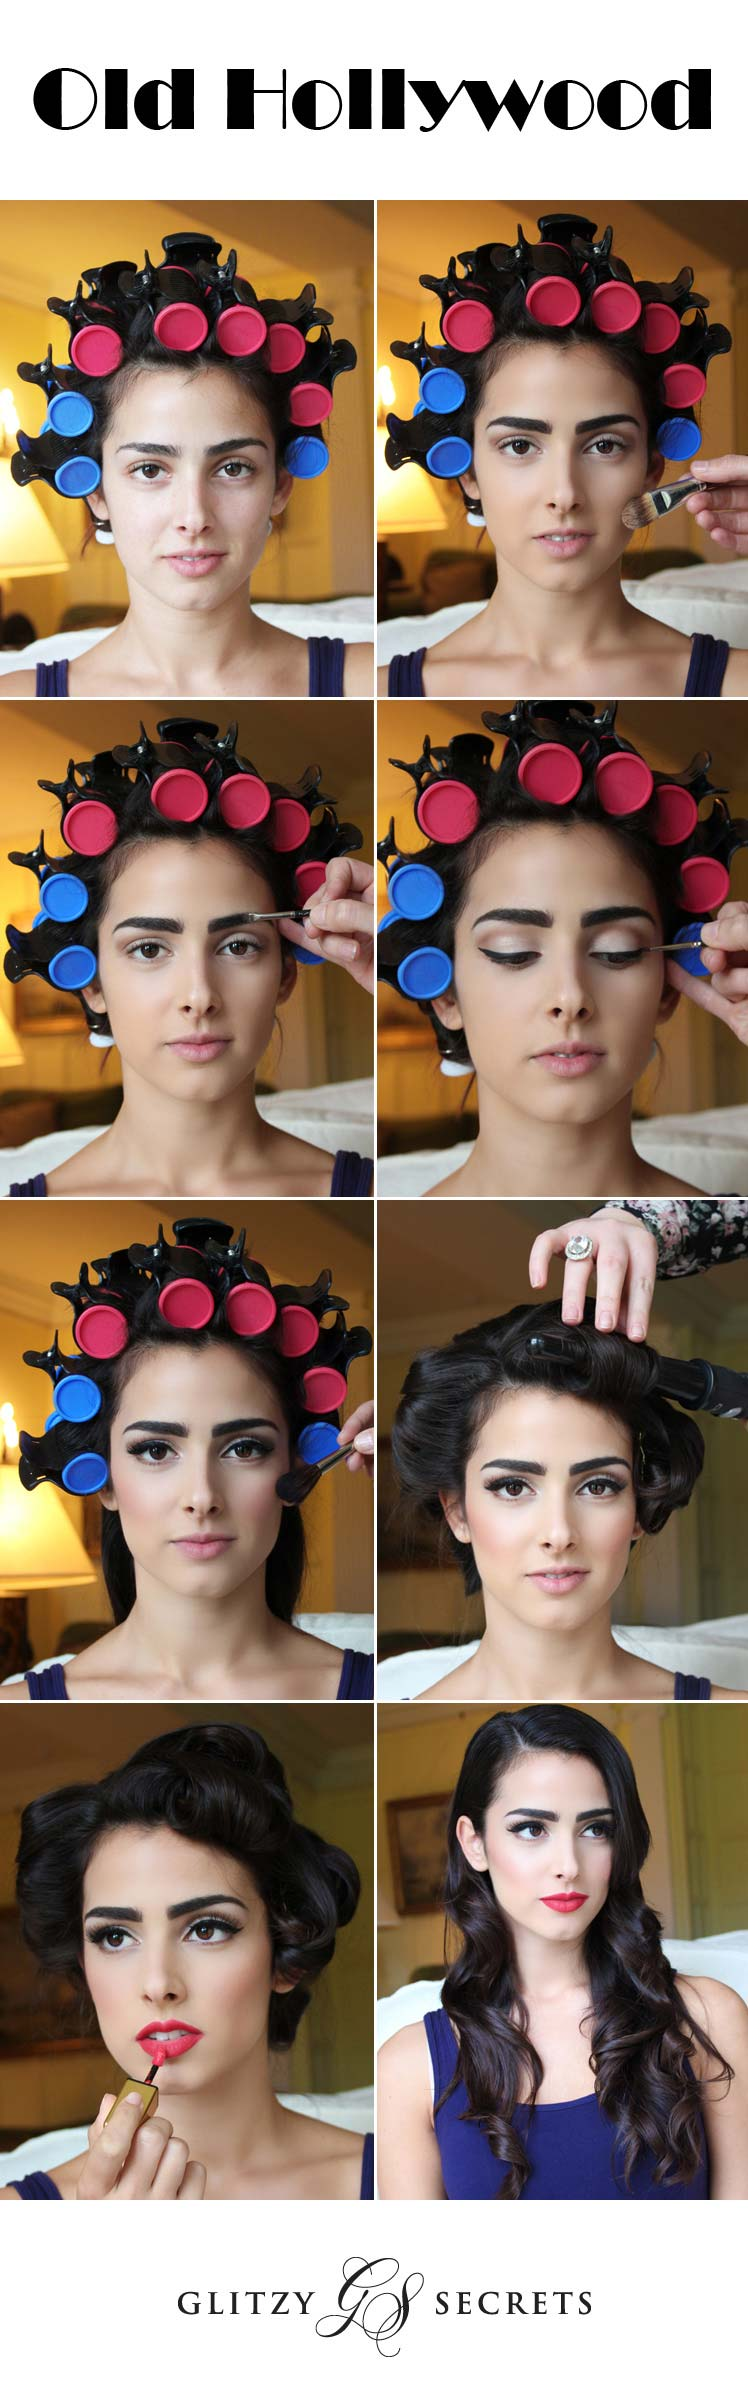 Hollywood style hair and make up tutorial